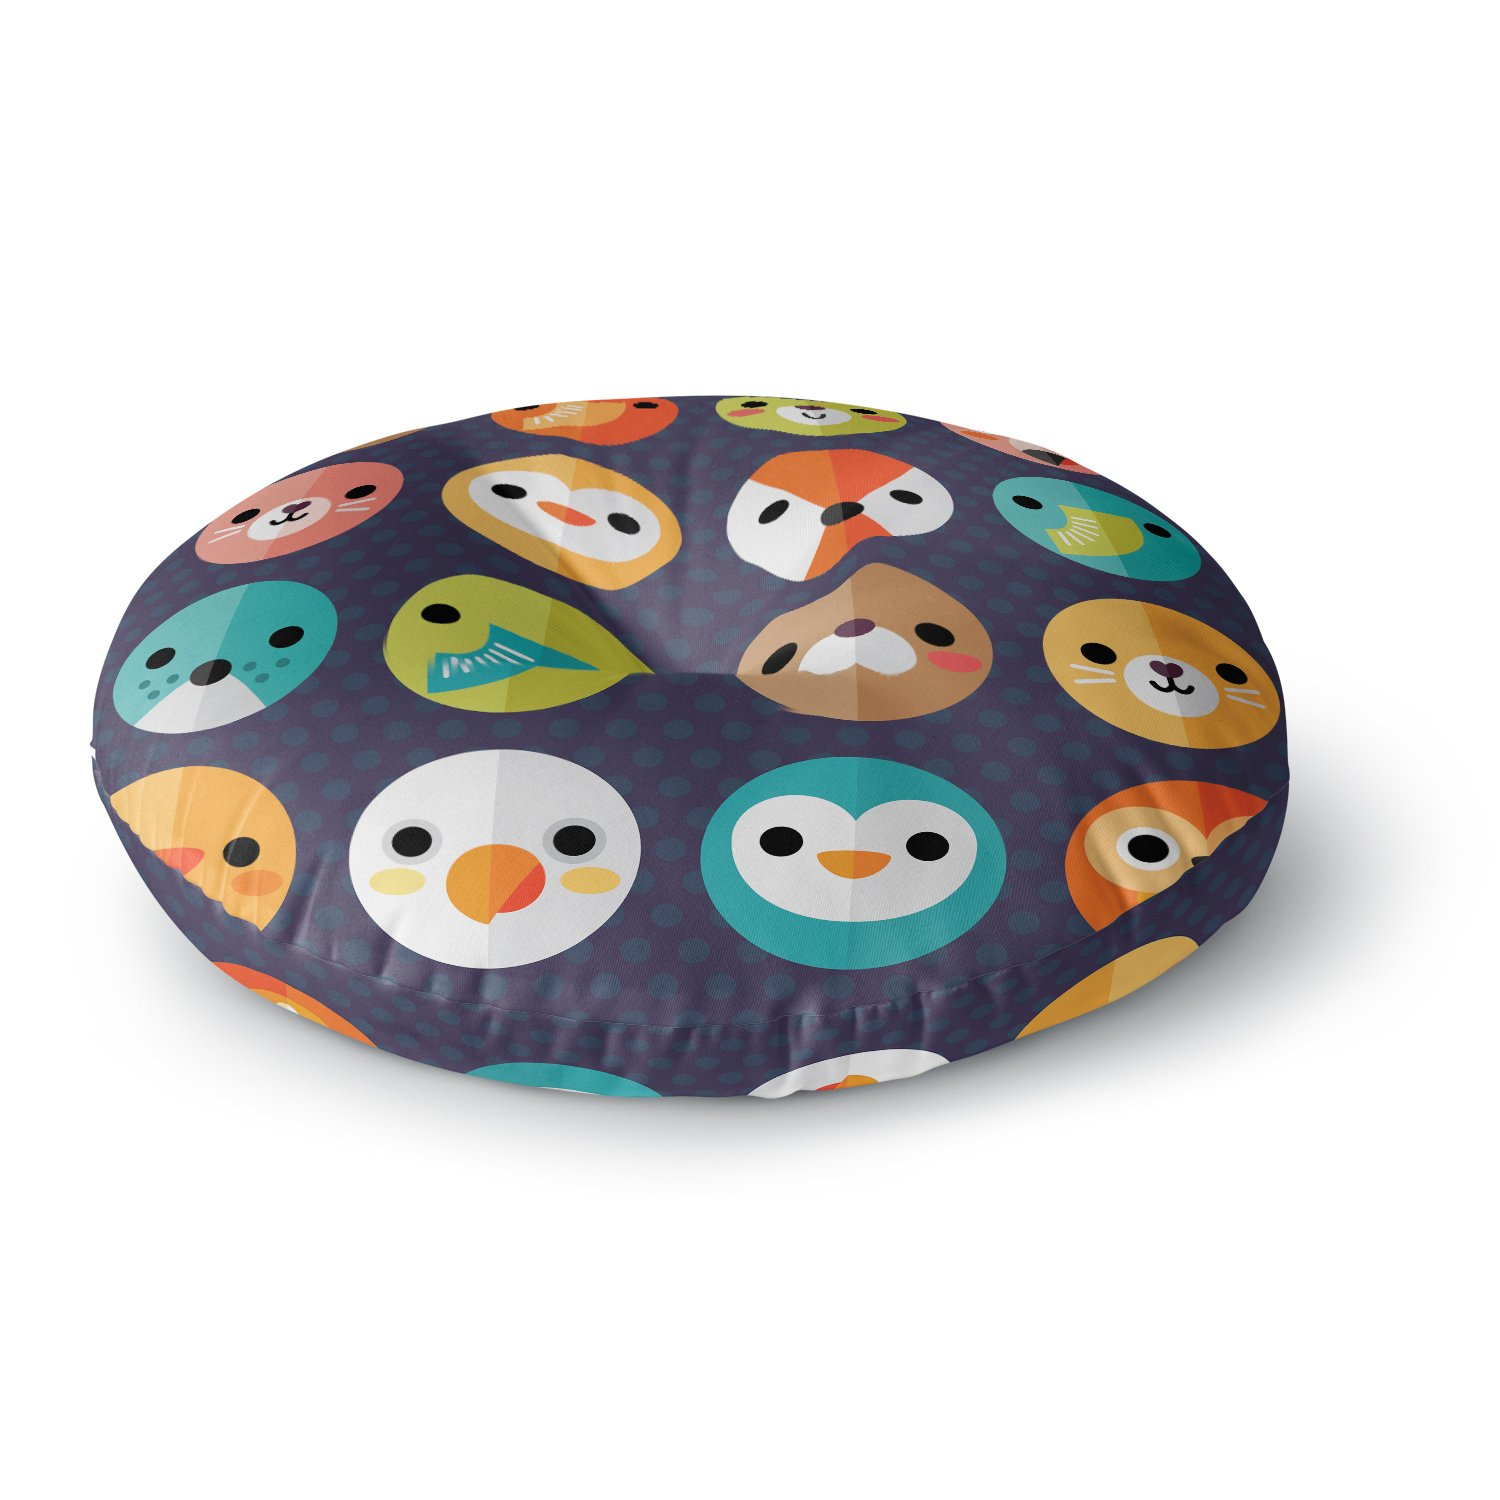 KESS InHouse Daisy Beatrice Smiley Faces Animals Round Floor Pillow, 26'' by Kess InHouse